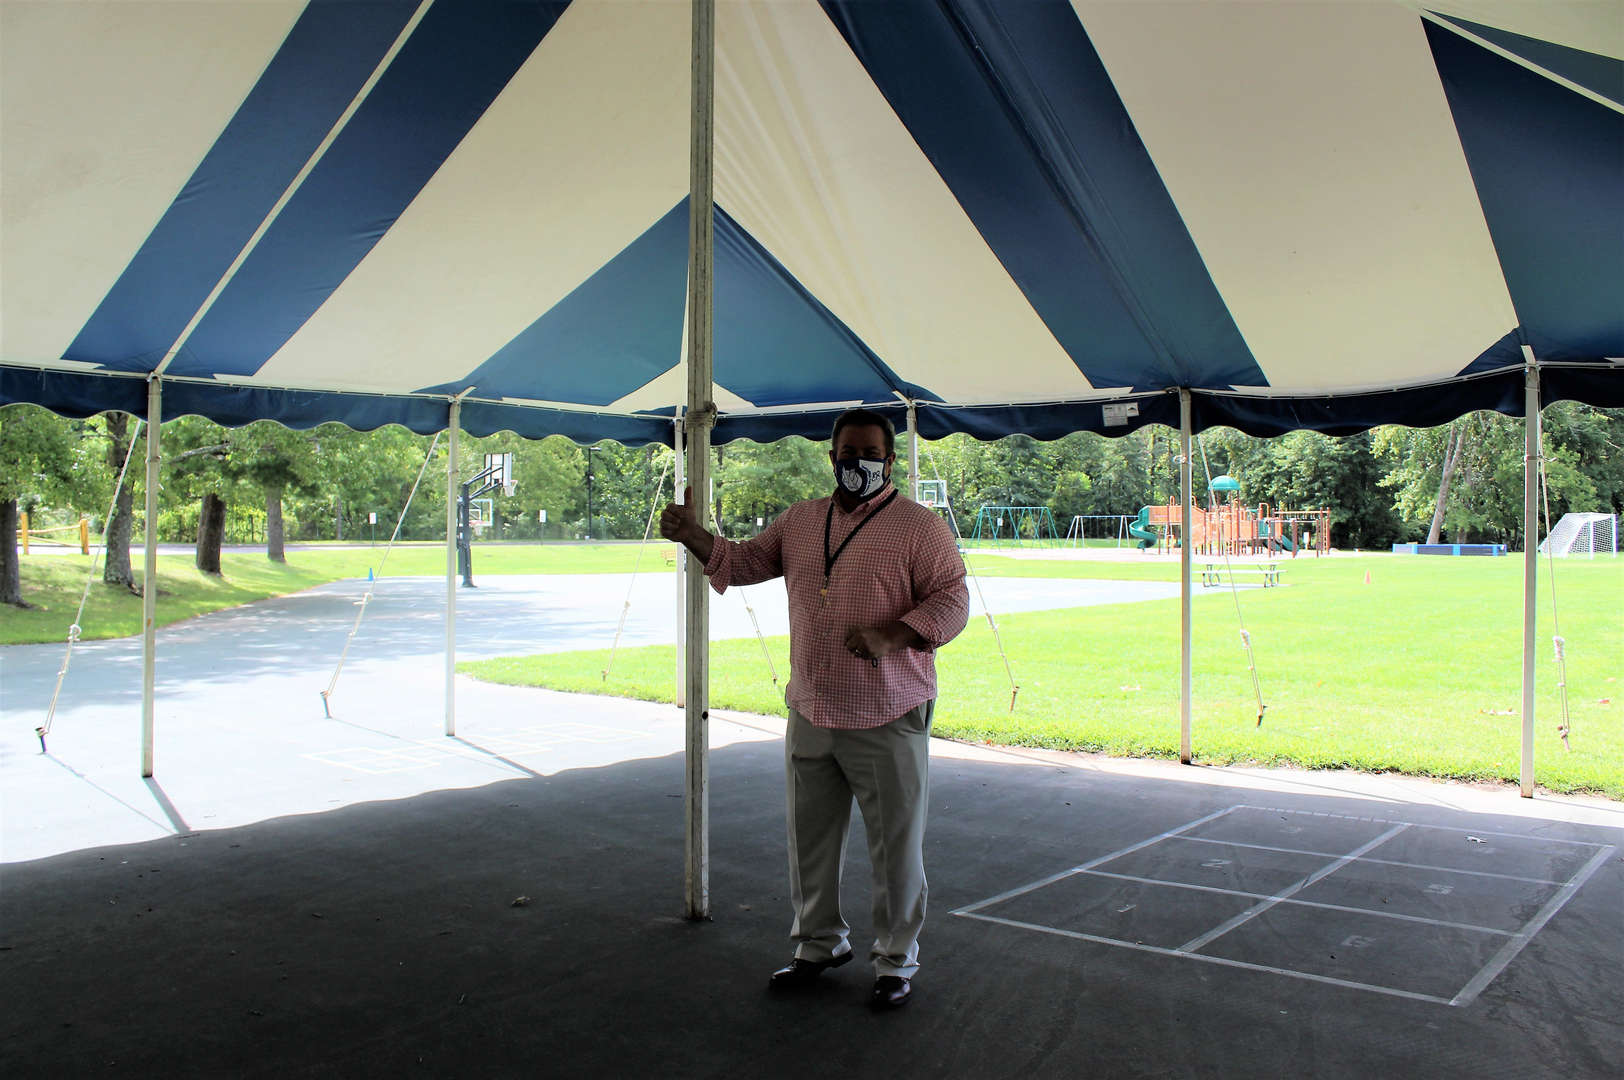 Superintendent Richard Calkins gives a thumbs-up as he stands in a tent outside the school.